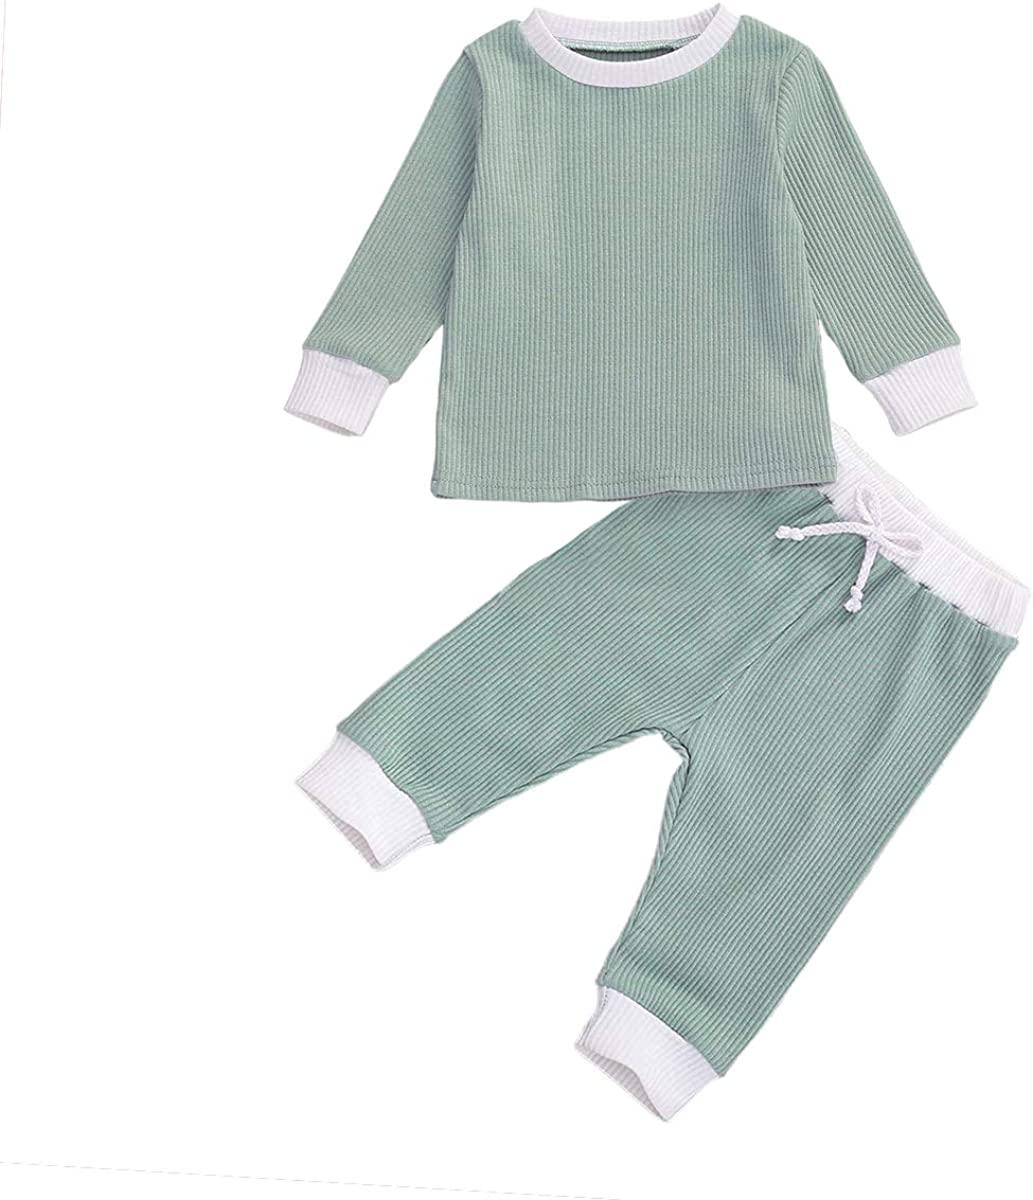 Voydsunflower Baby Girls Boys 2 Pieces Pants Set Solid Long Sleeve Romper Bodysuit Tops&Pants Pajamas Outfits